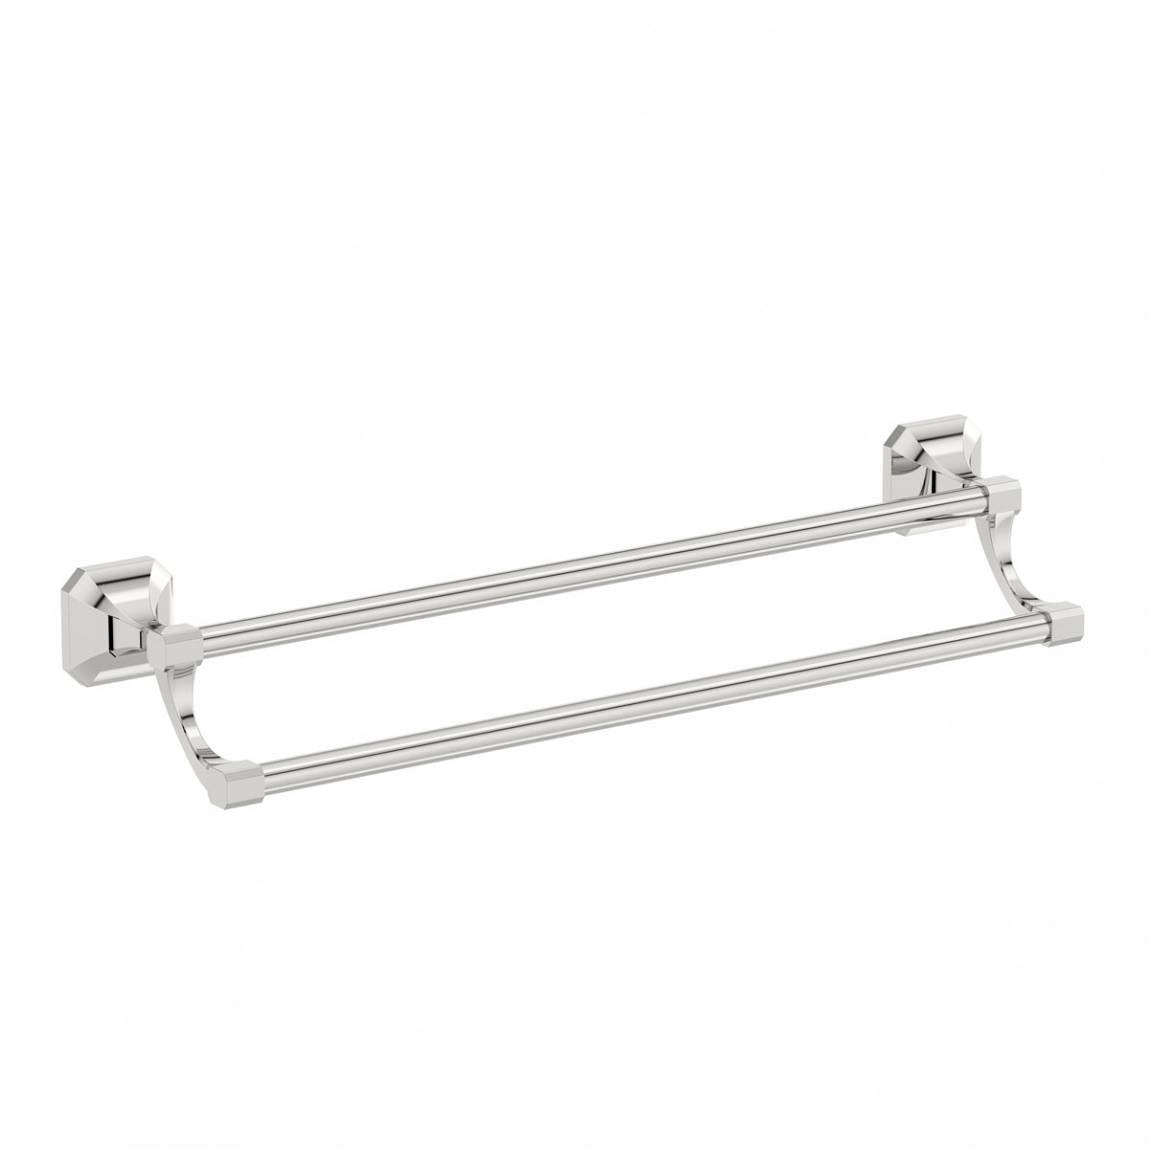 The Bath Co. Camberley double towel rail